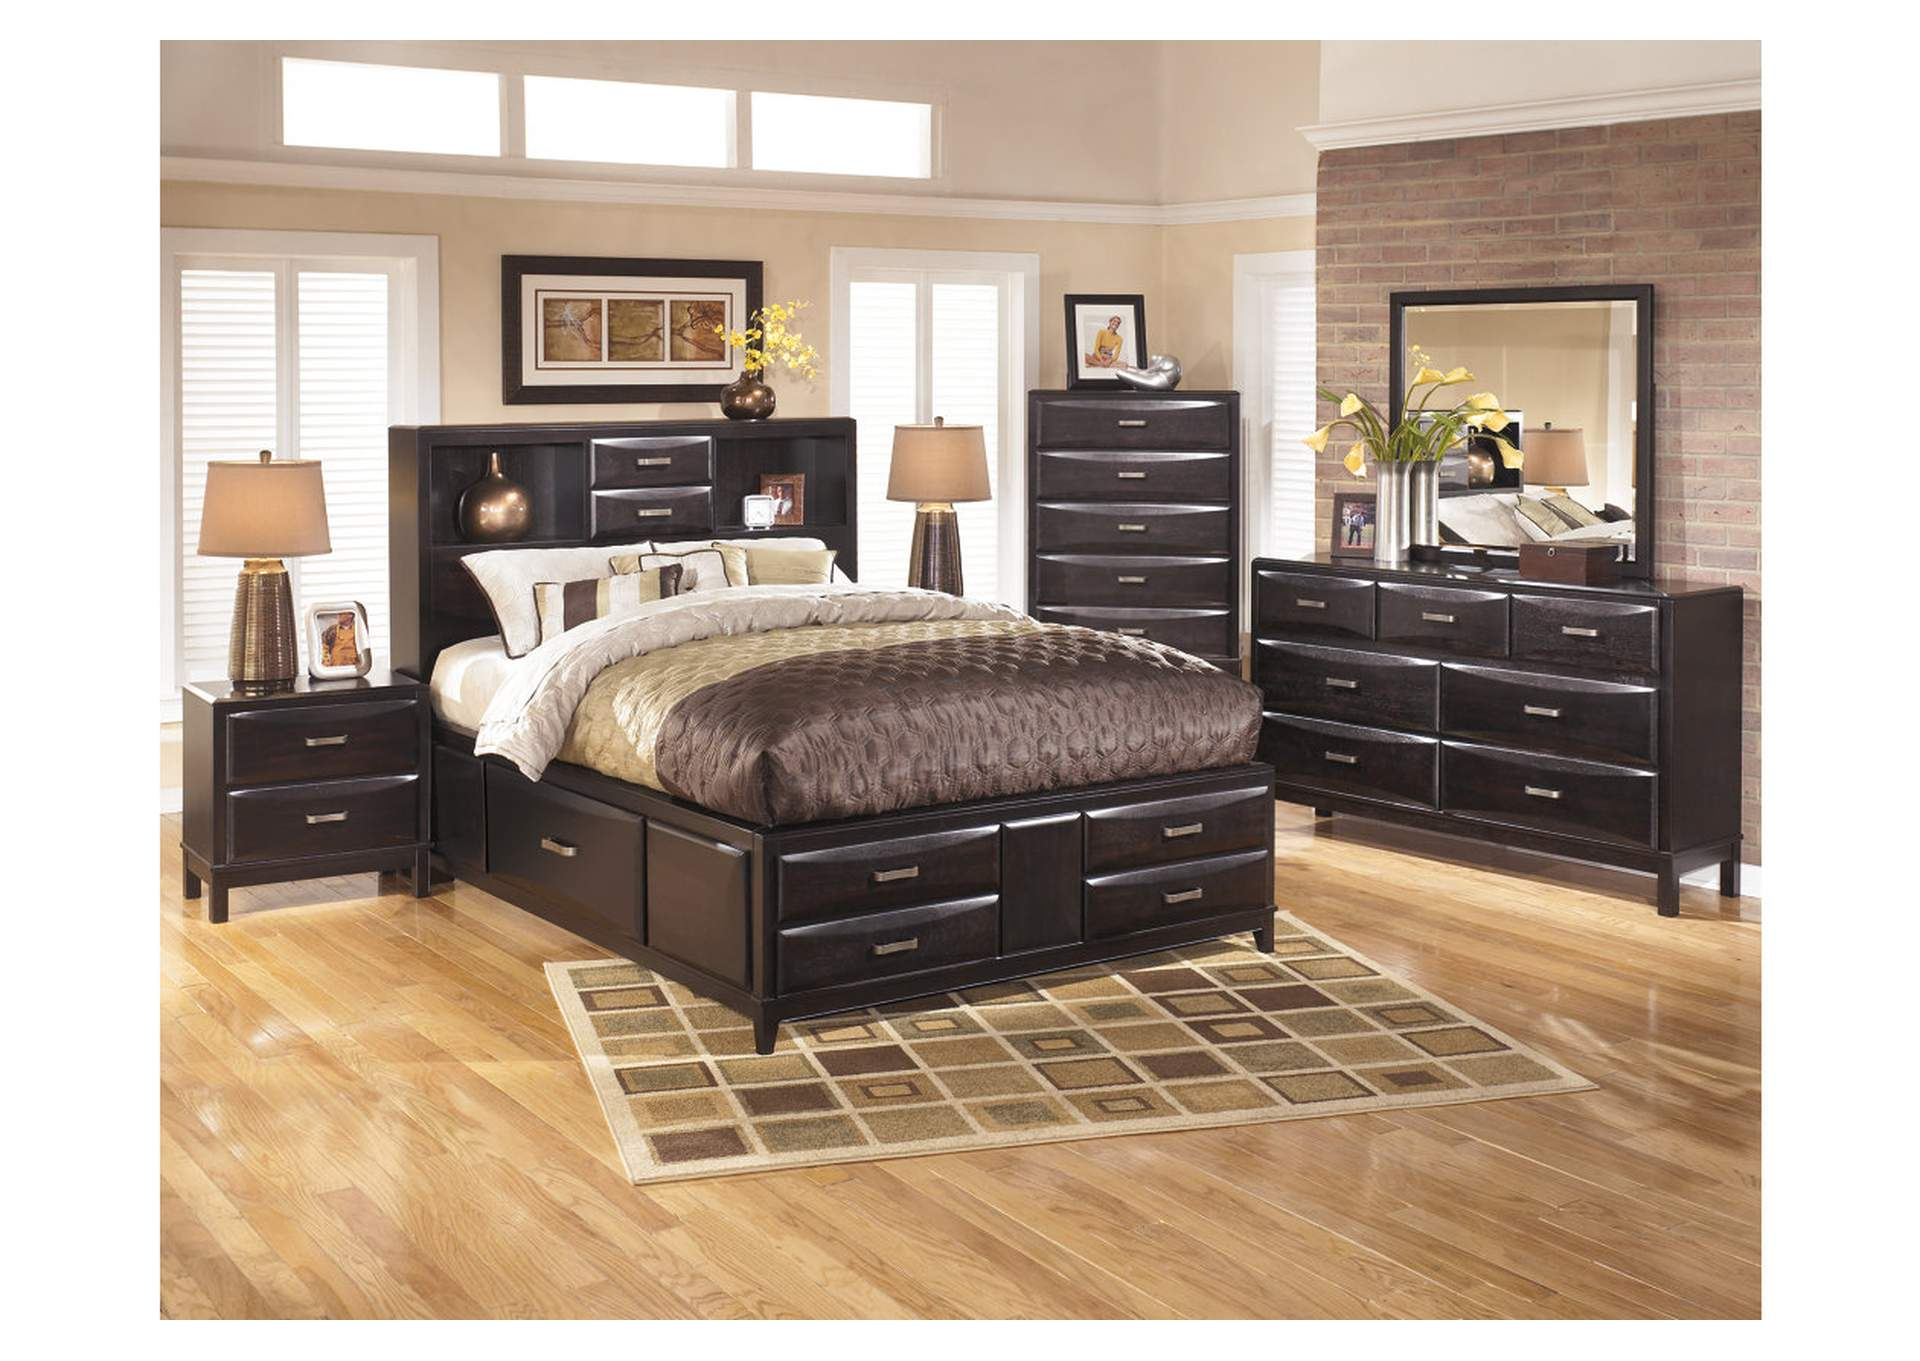 Kira Black King Storage Bed w/Dresser & Mirror,Ashley